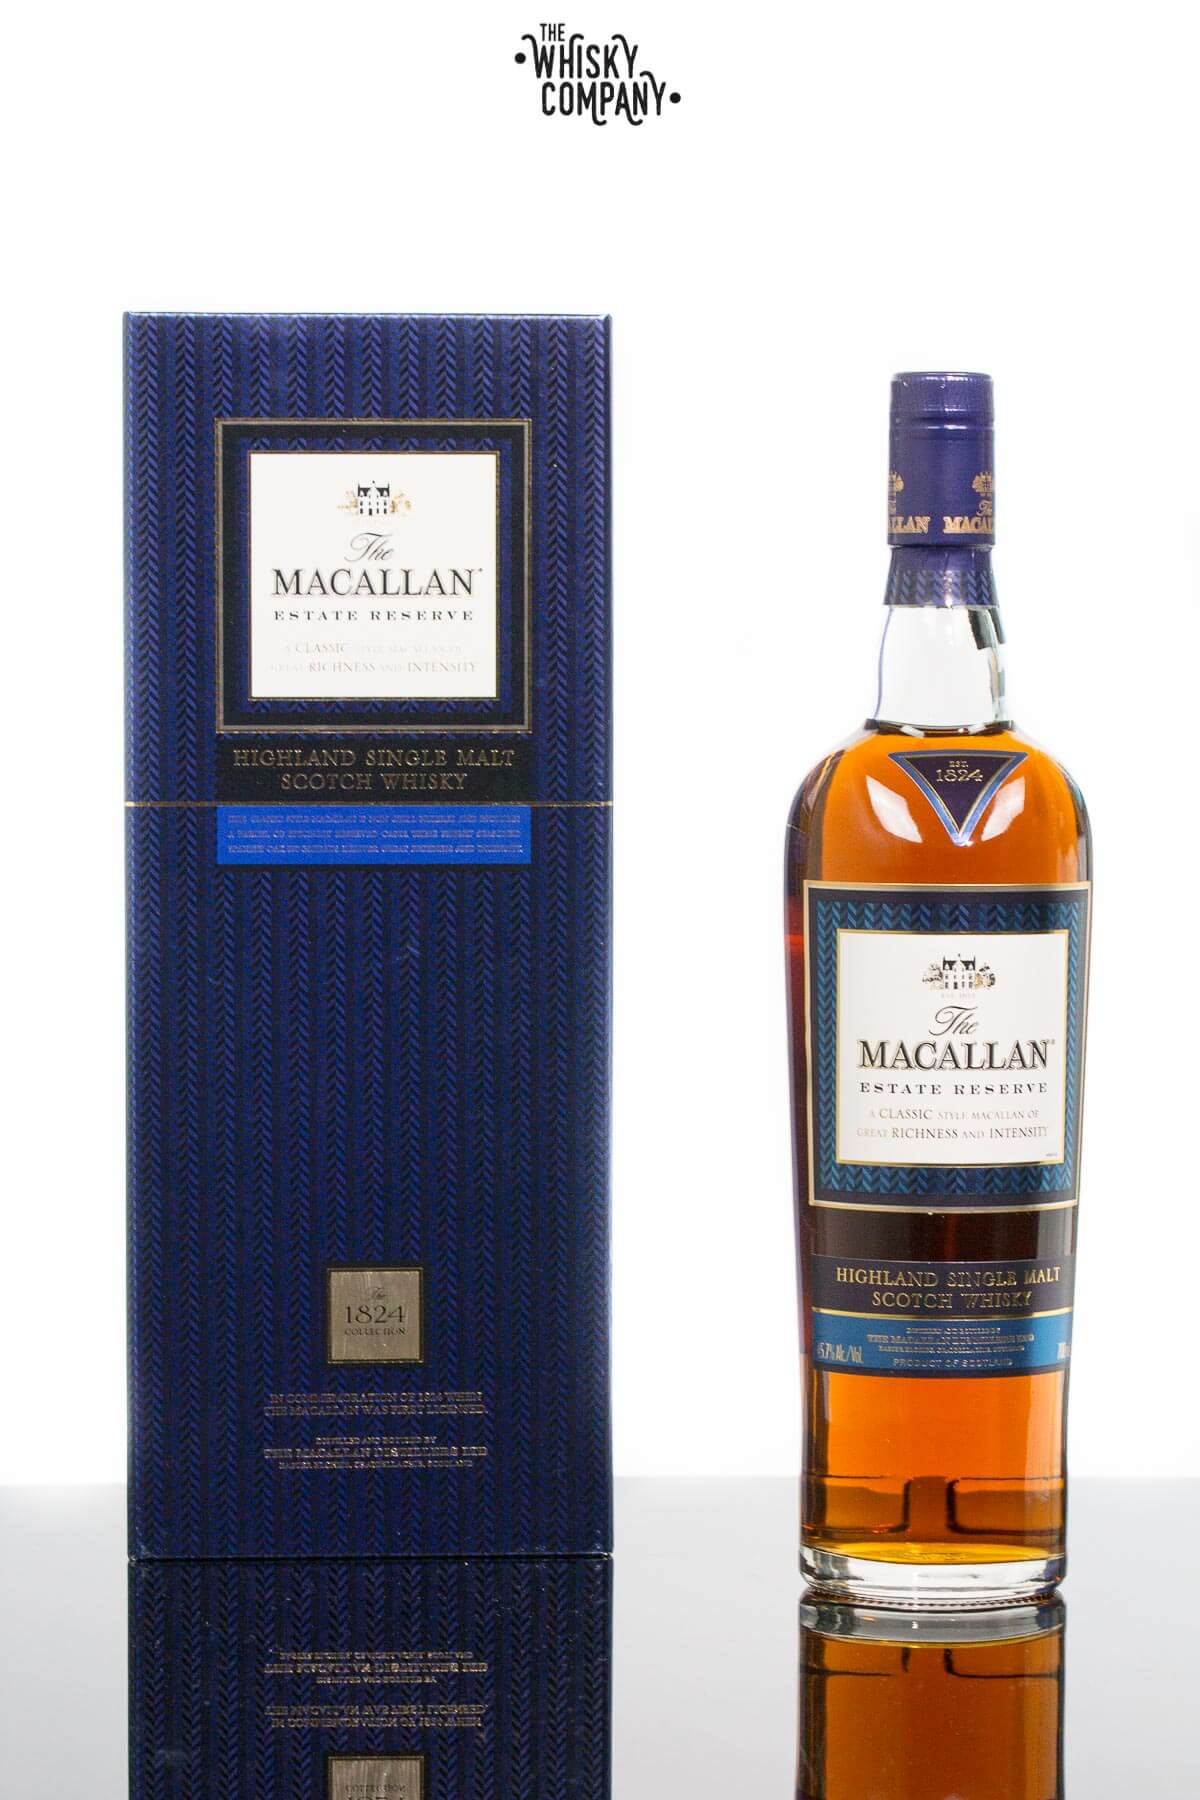 The Macallan Estate Reserve 1824 Collection Highland Single Malt Scotch Whisky